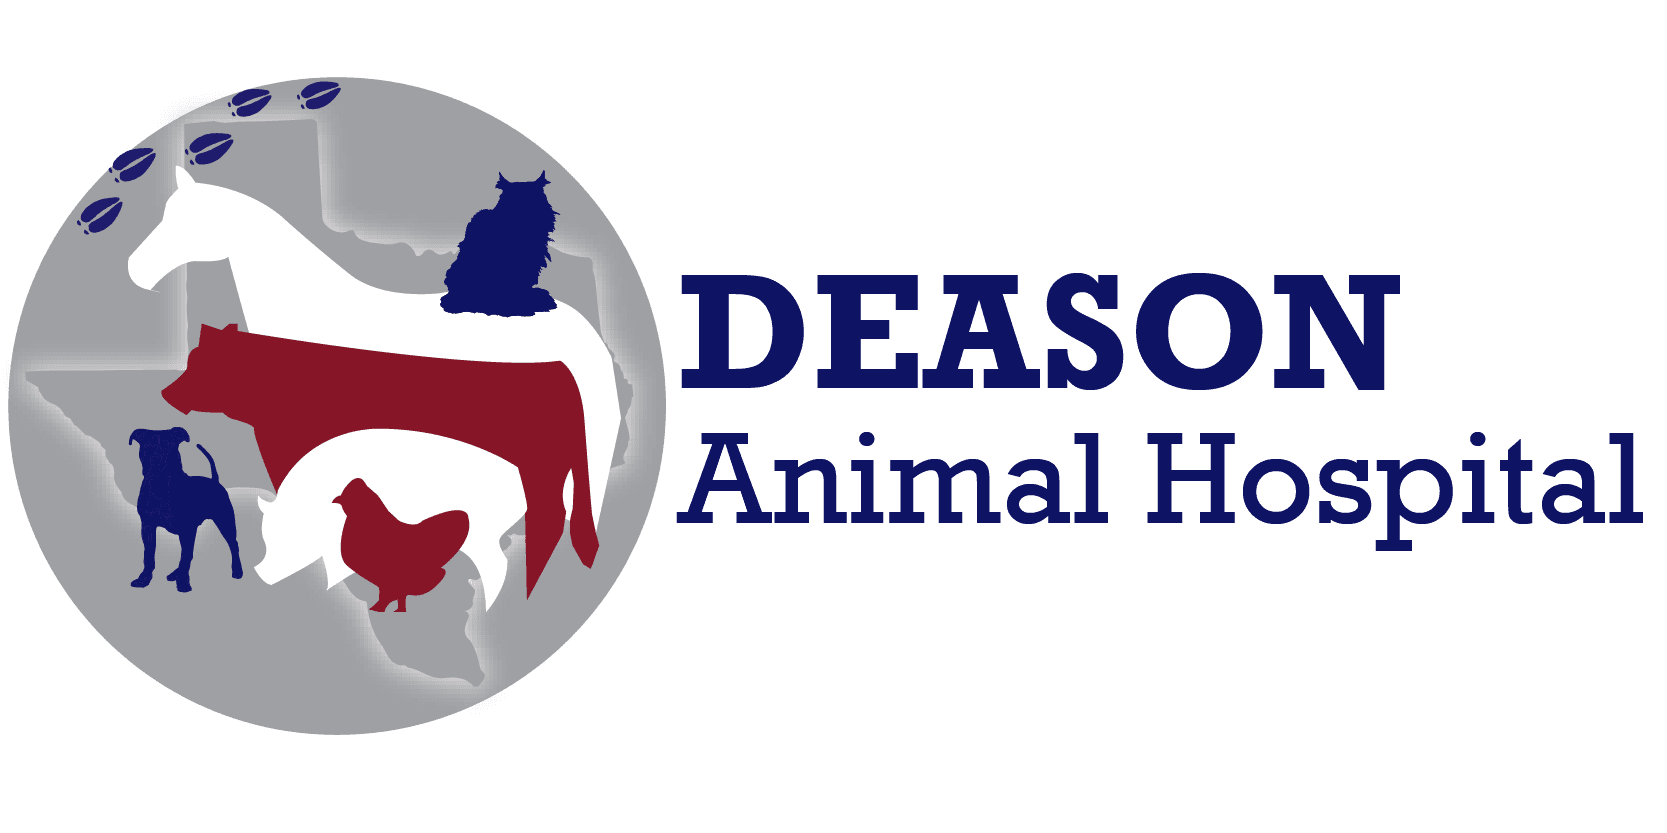 Puppy veterinarians serving Floresville Texas, Stockdale, Pleasanton and Wilson County Texas